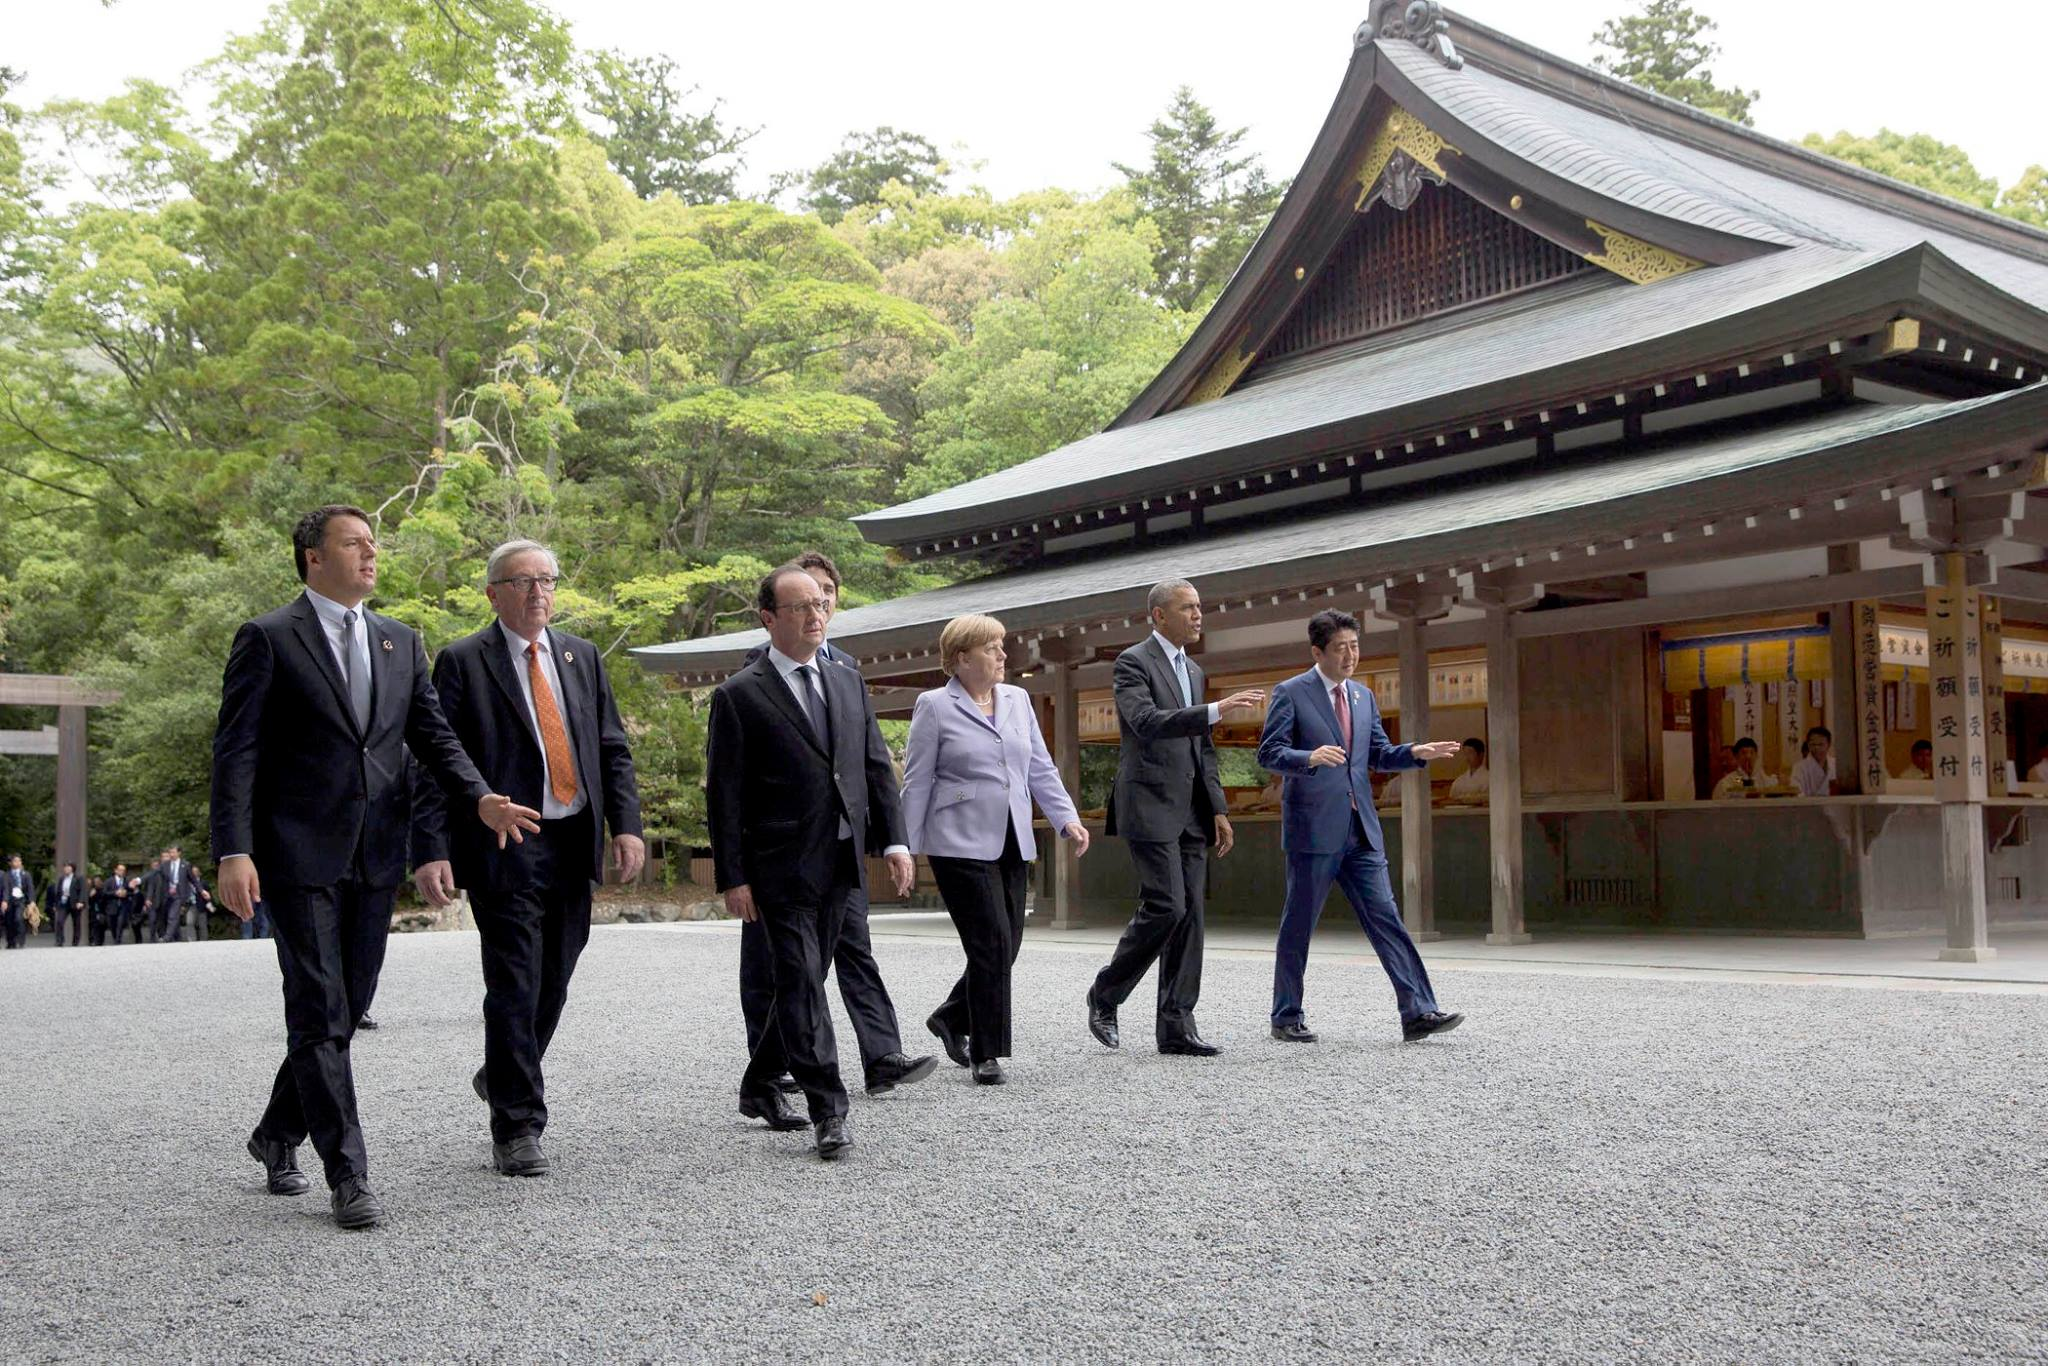 G7 summit in Ise-Shima Japan